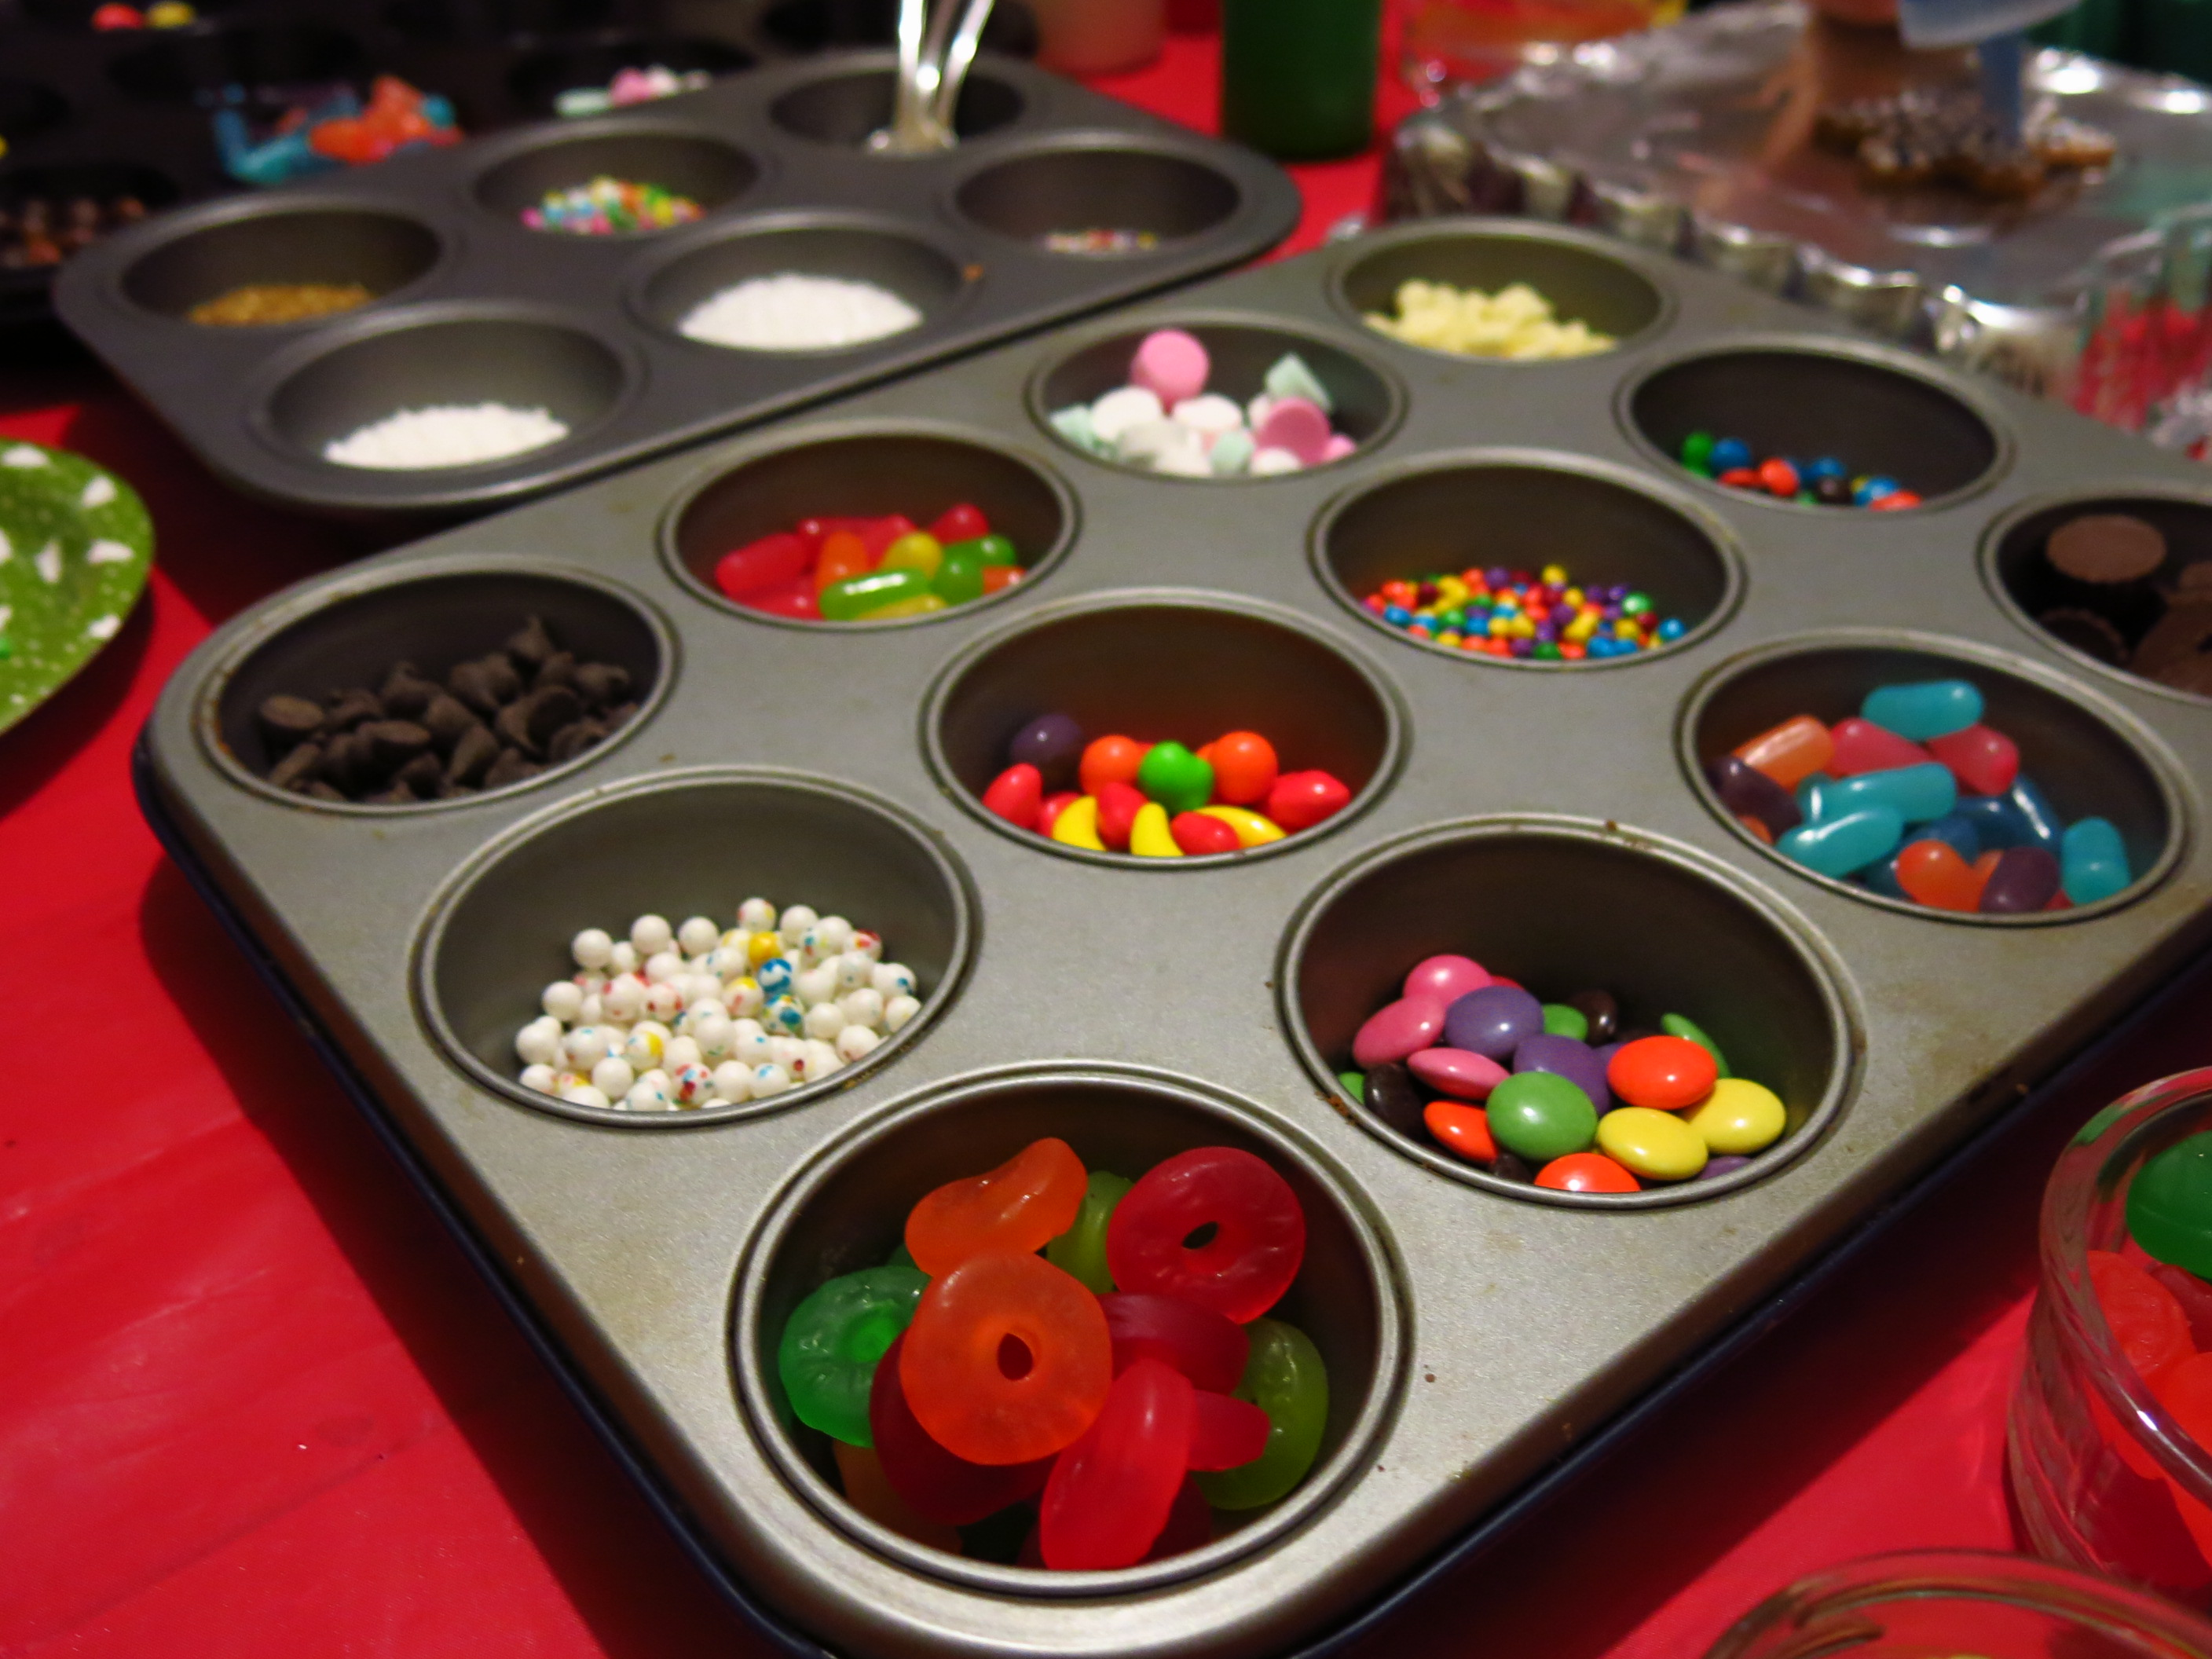 Cookie decorating party ideas - Cookie Decorating Candies